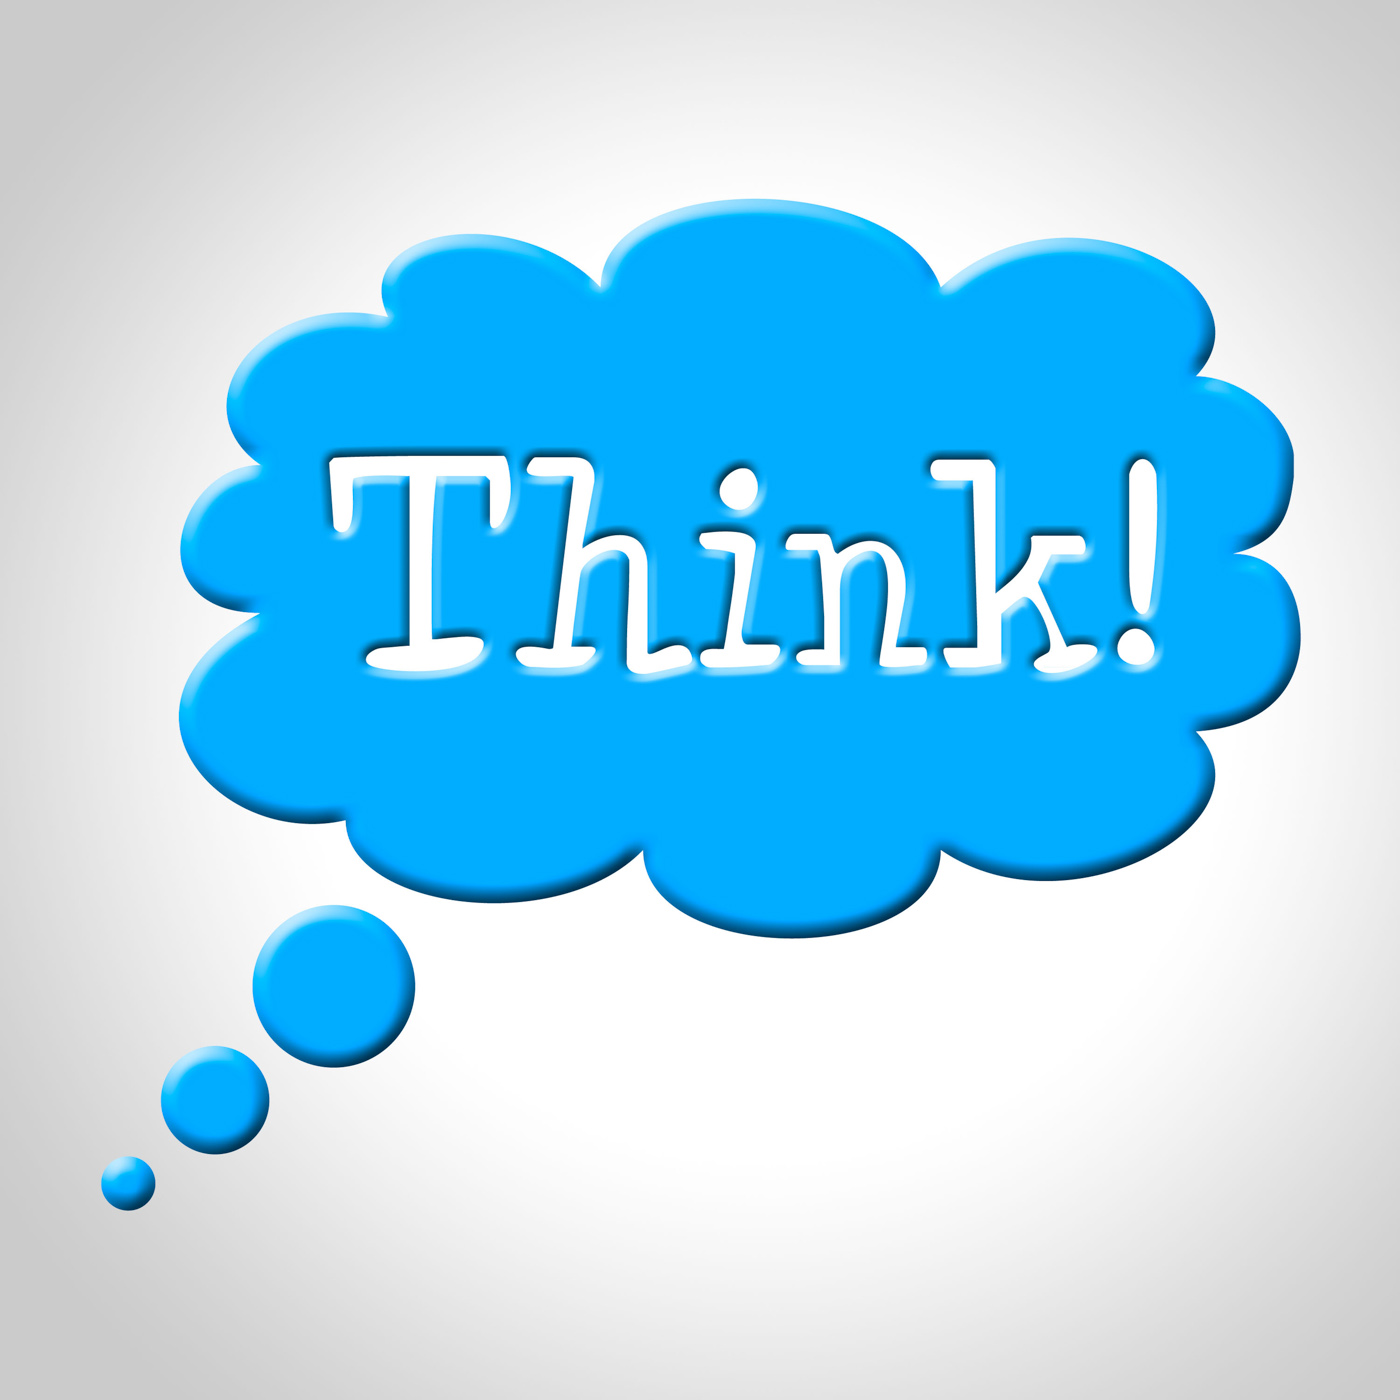 Think Thought Bubble Means Consideration Plan And Reflecting, Idea, Thinkaboutit, Think, Reflection, HQ Photo